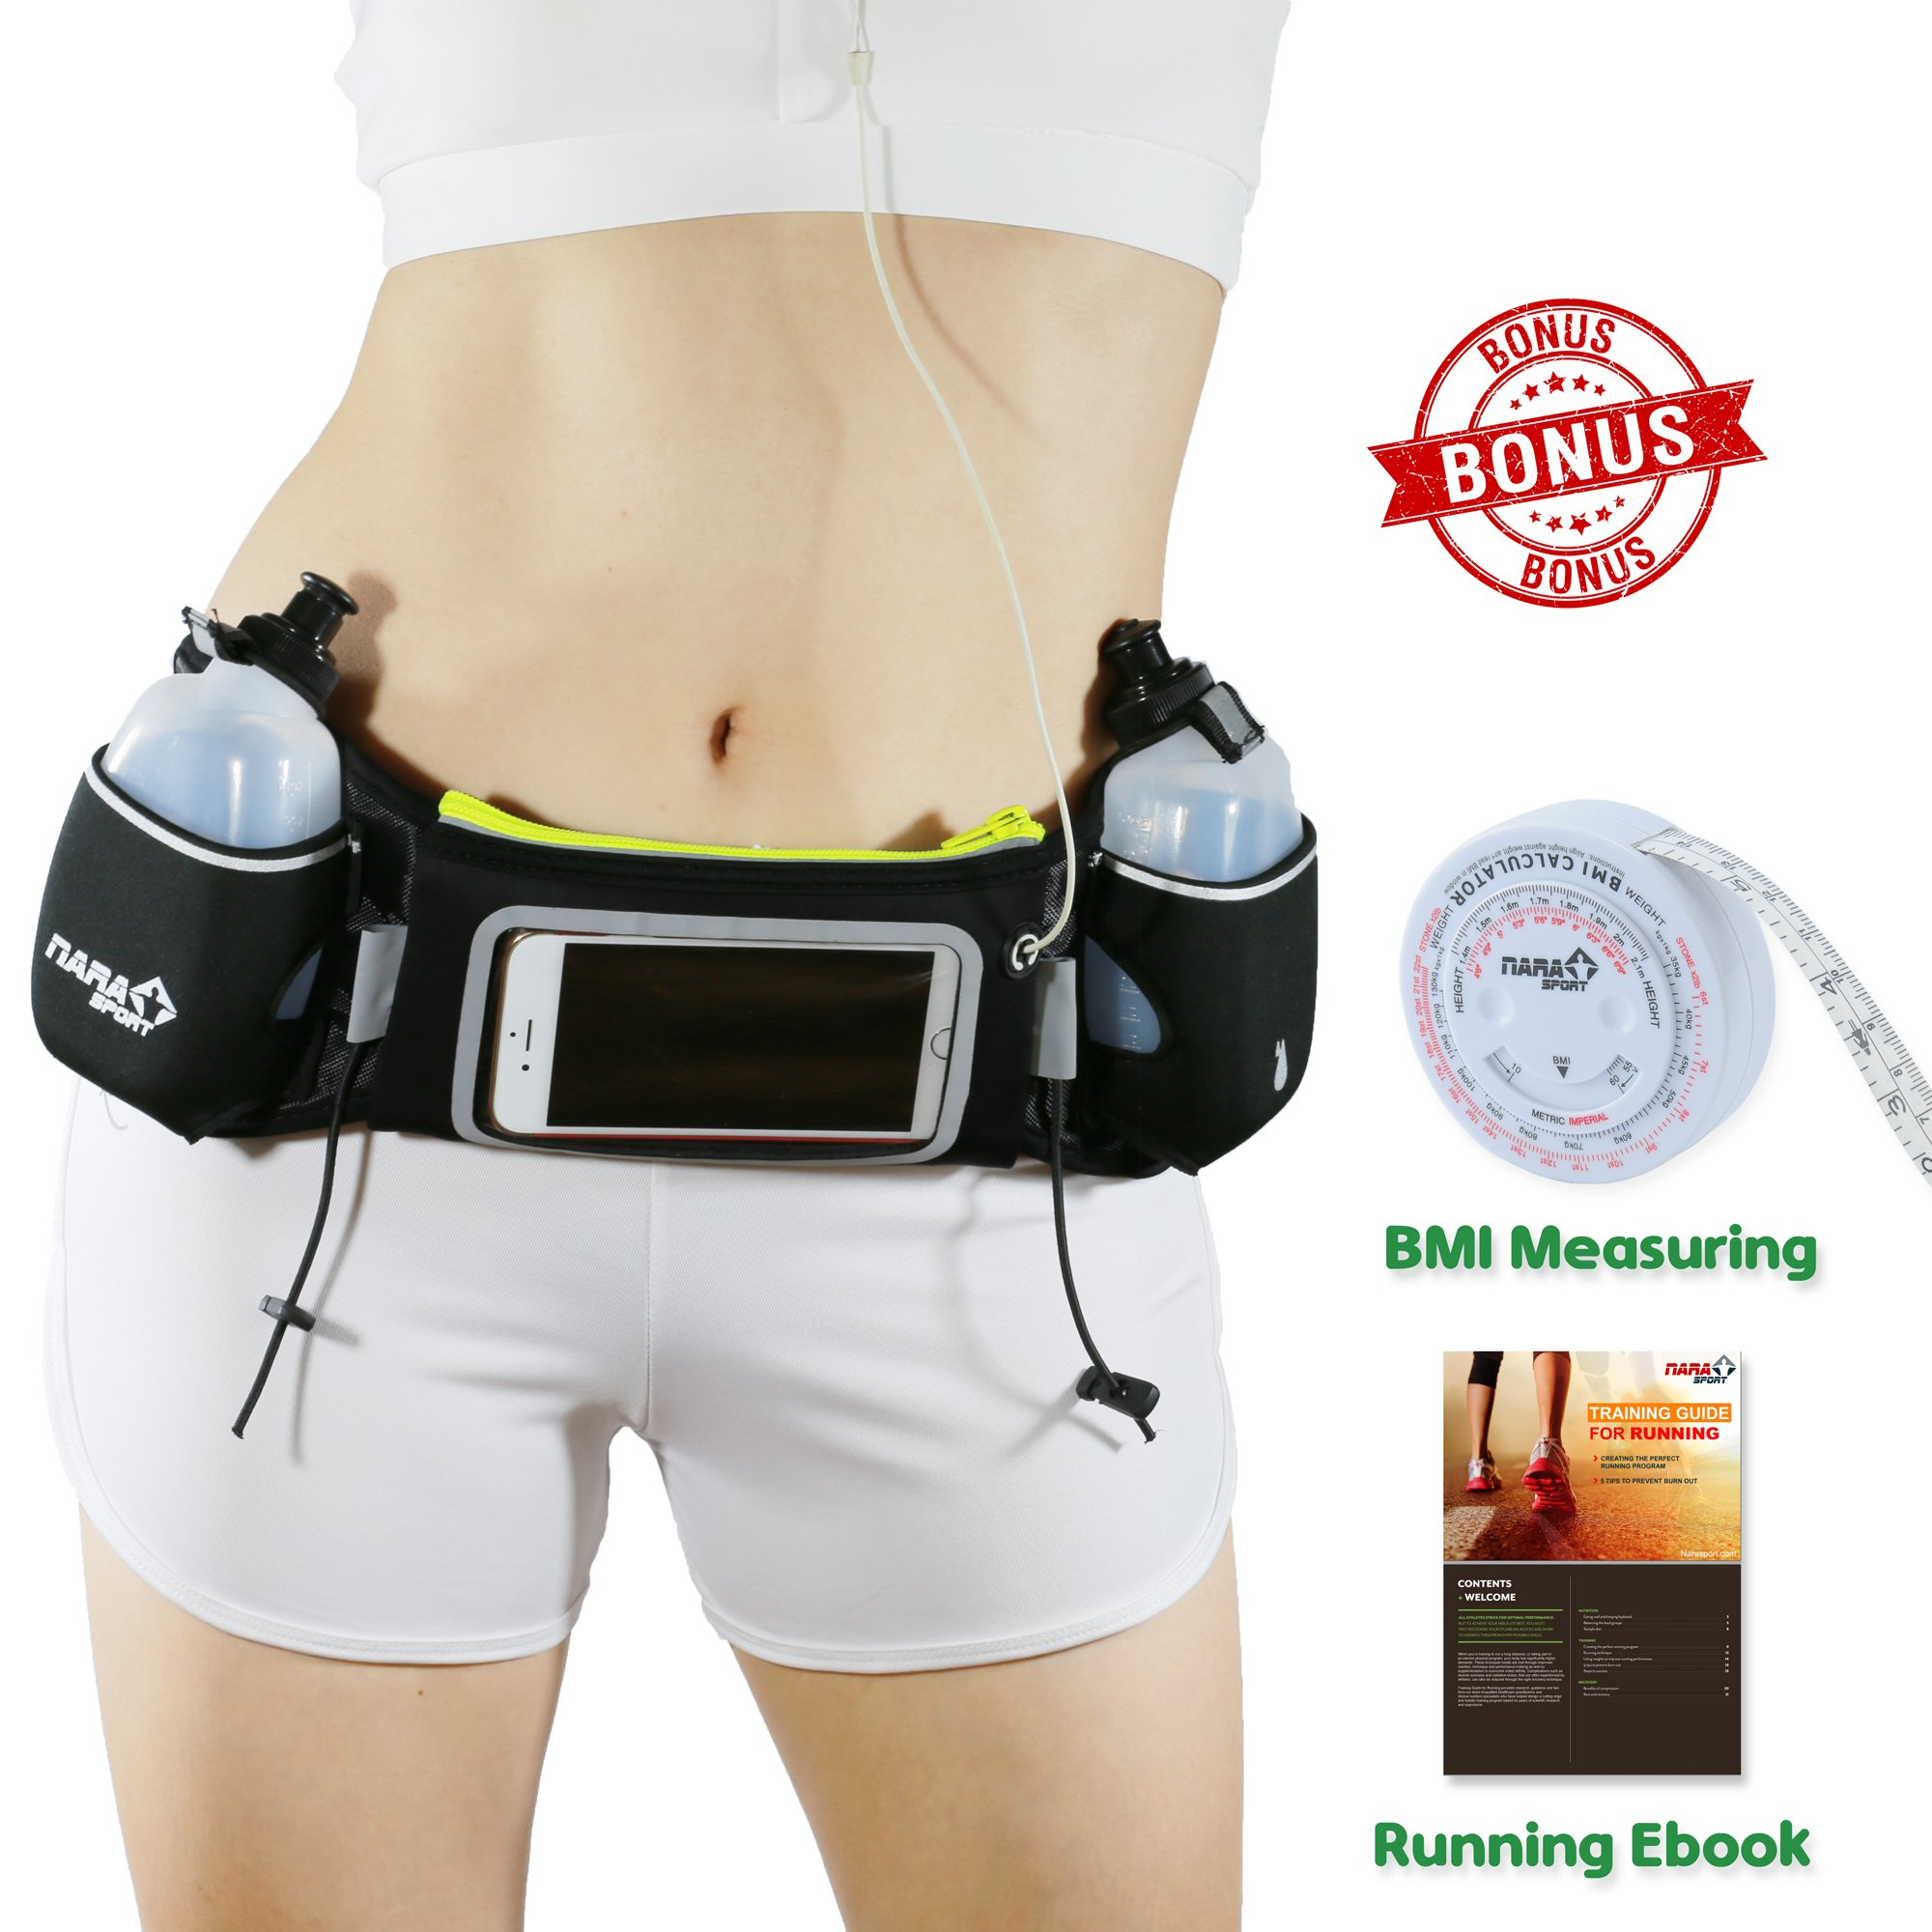 [Upgrade Version] Running belt with water Bottle by NARA Sport for running, walking,cycling,climbing, Hiking with Touchscreen Cellphone - Bonus a BMI Body Measuring, ebook, video Training by NARA Sport